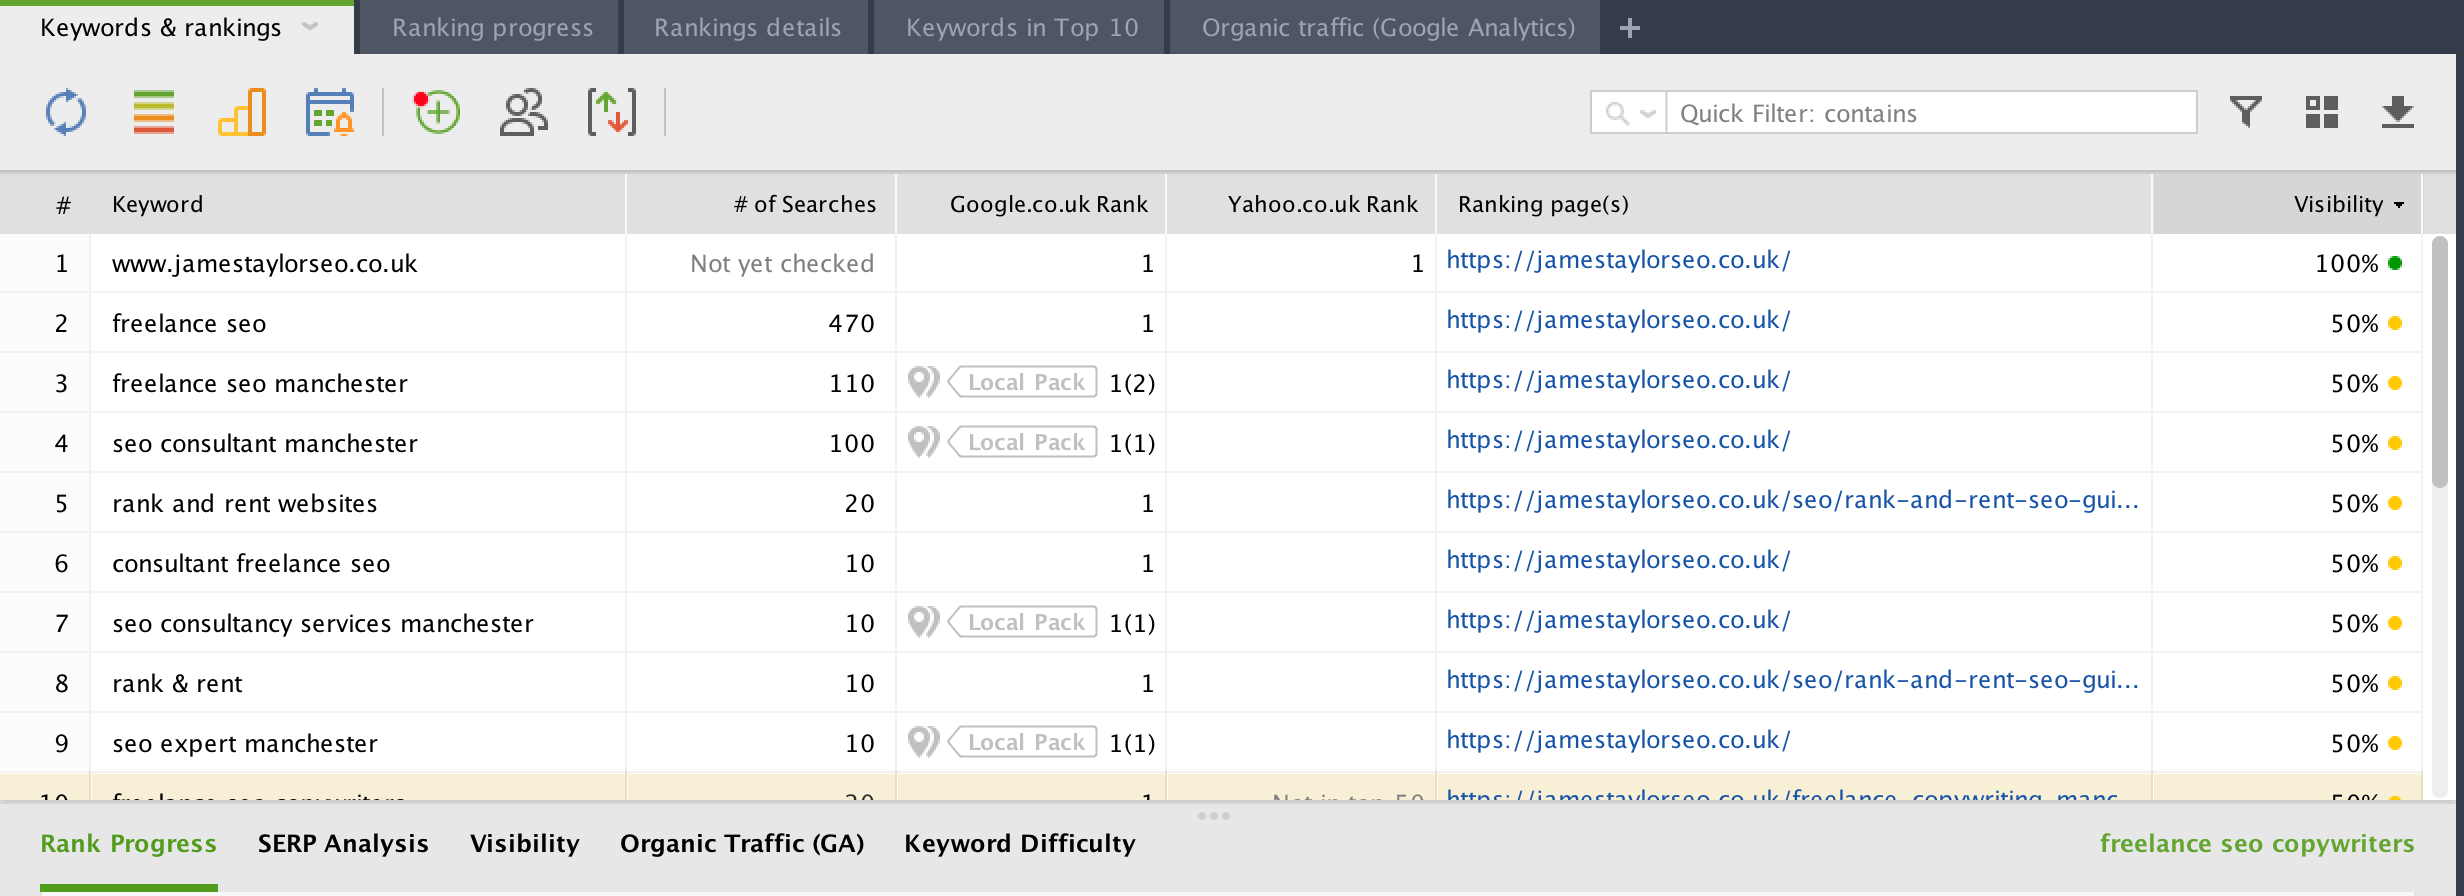 SEO PowerSuite overview image